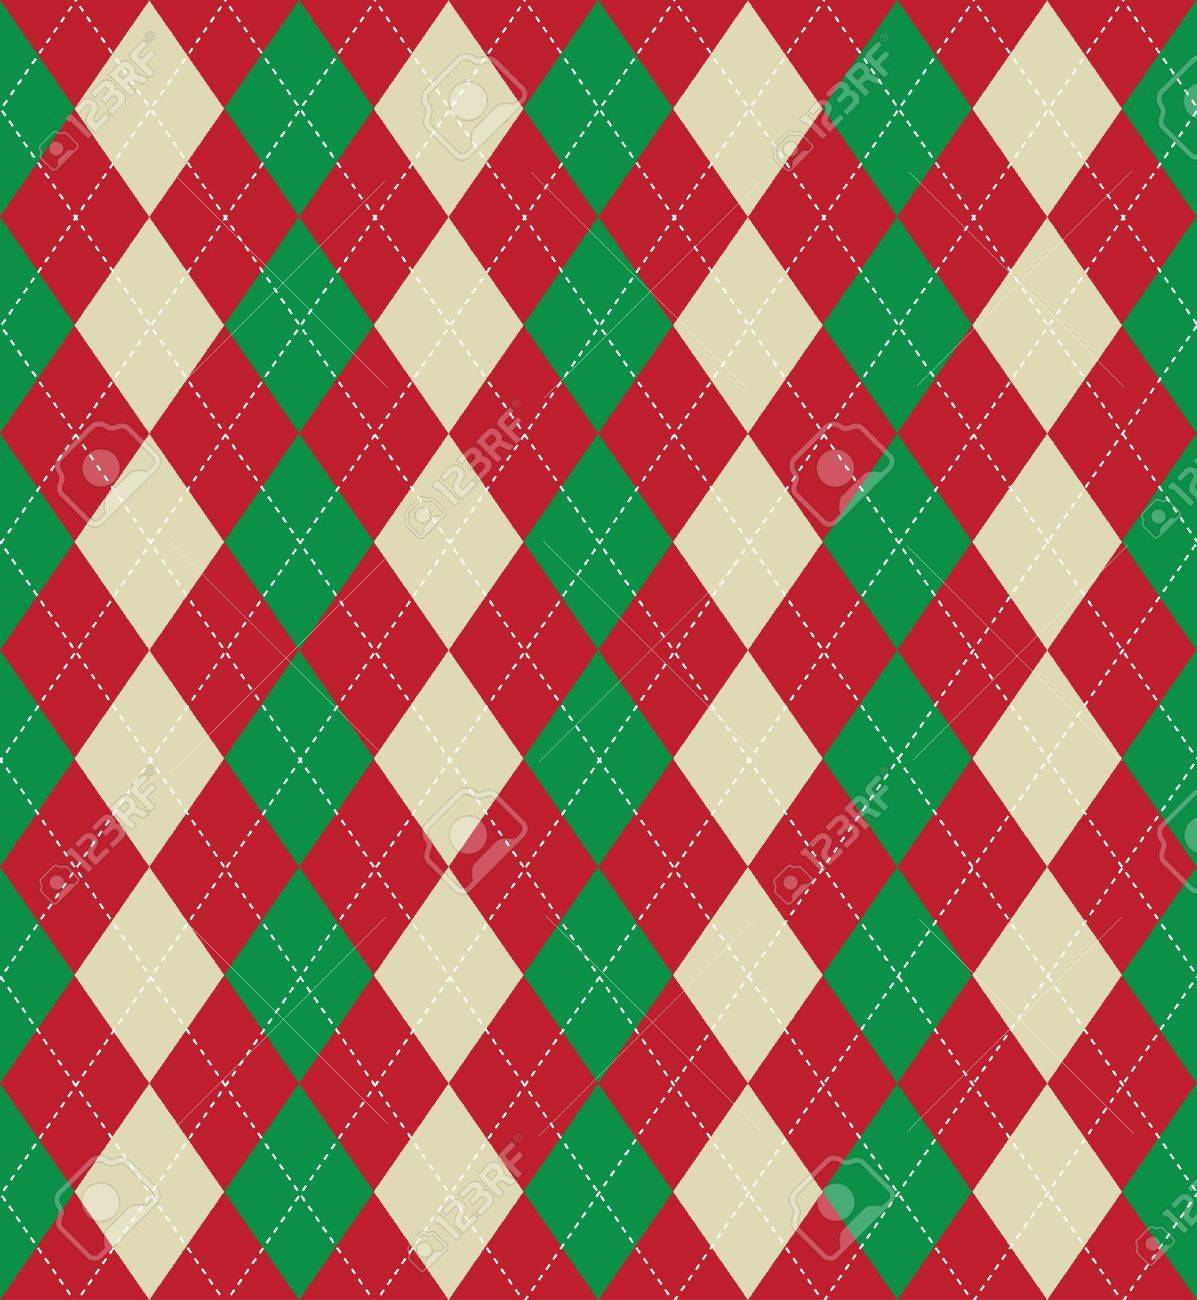 Seamless Tiled Background Of An Argyle Style Pattern Using ...